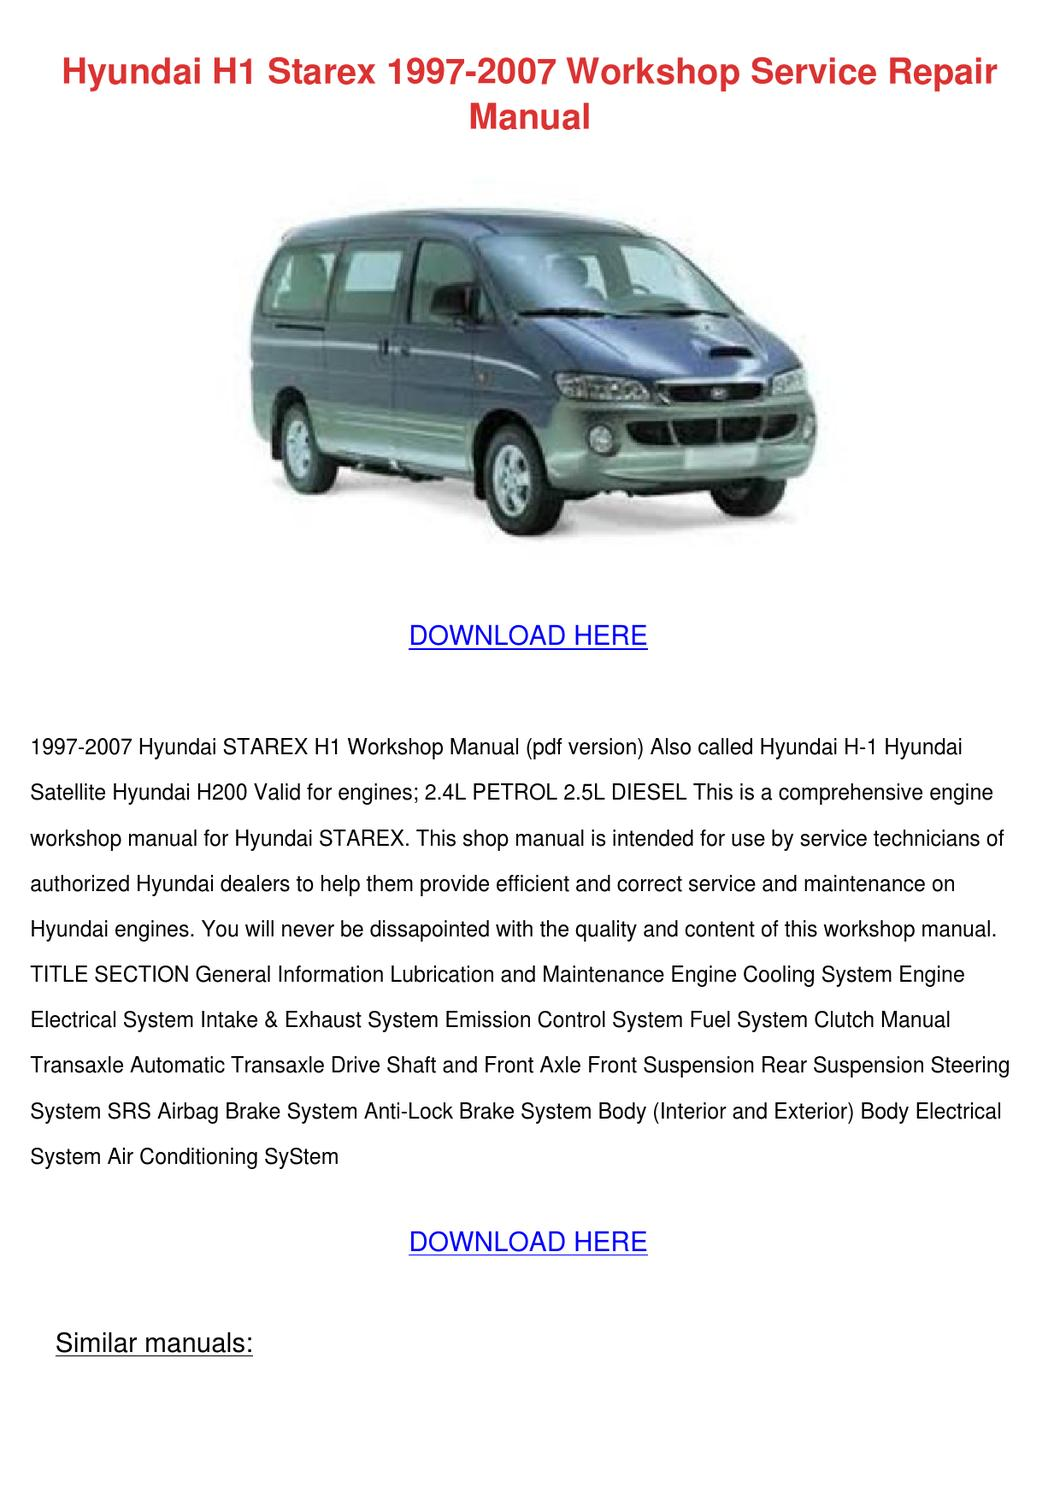 Automobile Emission Control Pdf Hyundai H200 Wiring Diagram Noble Group Metal Is The Best Way To Automotive Exhaust Emissions